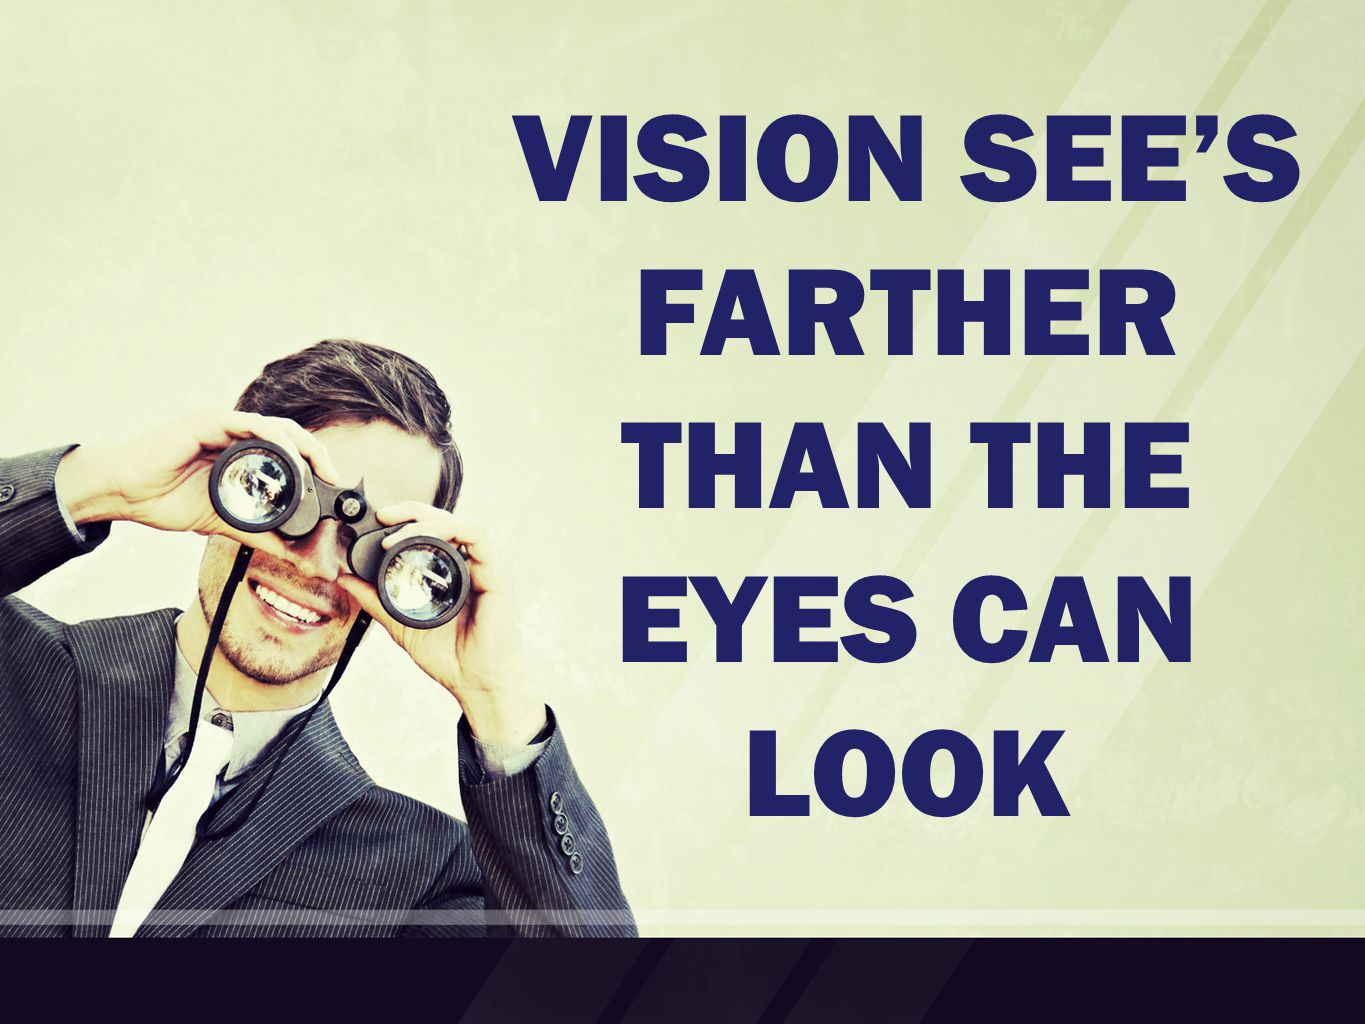 VISION SEE'S FARTHER THAN THE EYES CAN LOOK